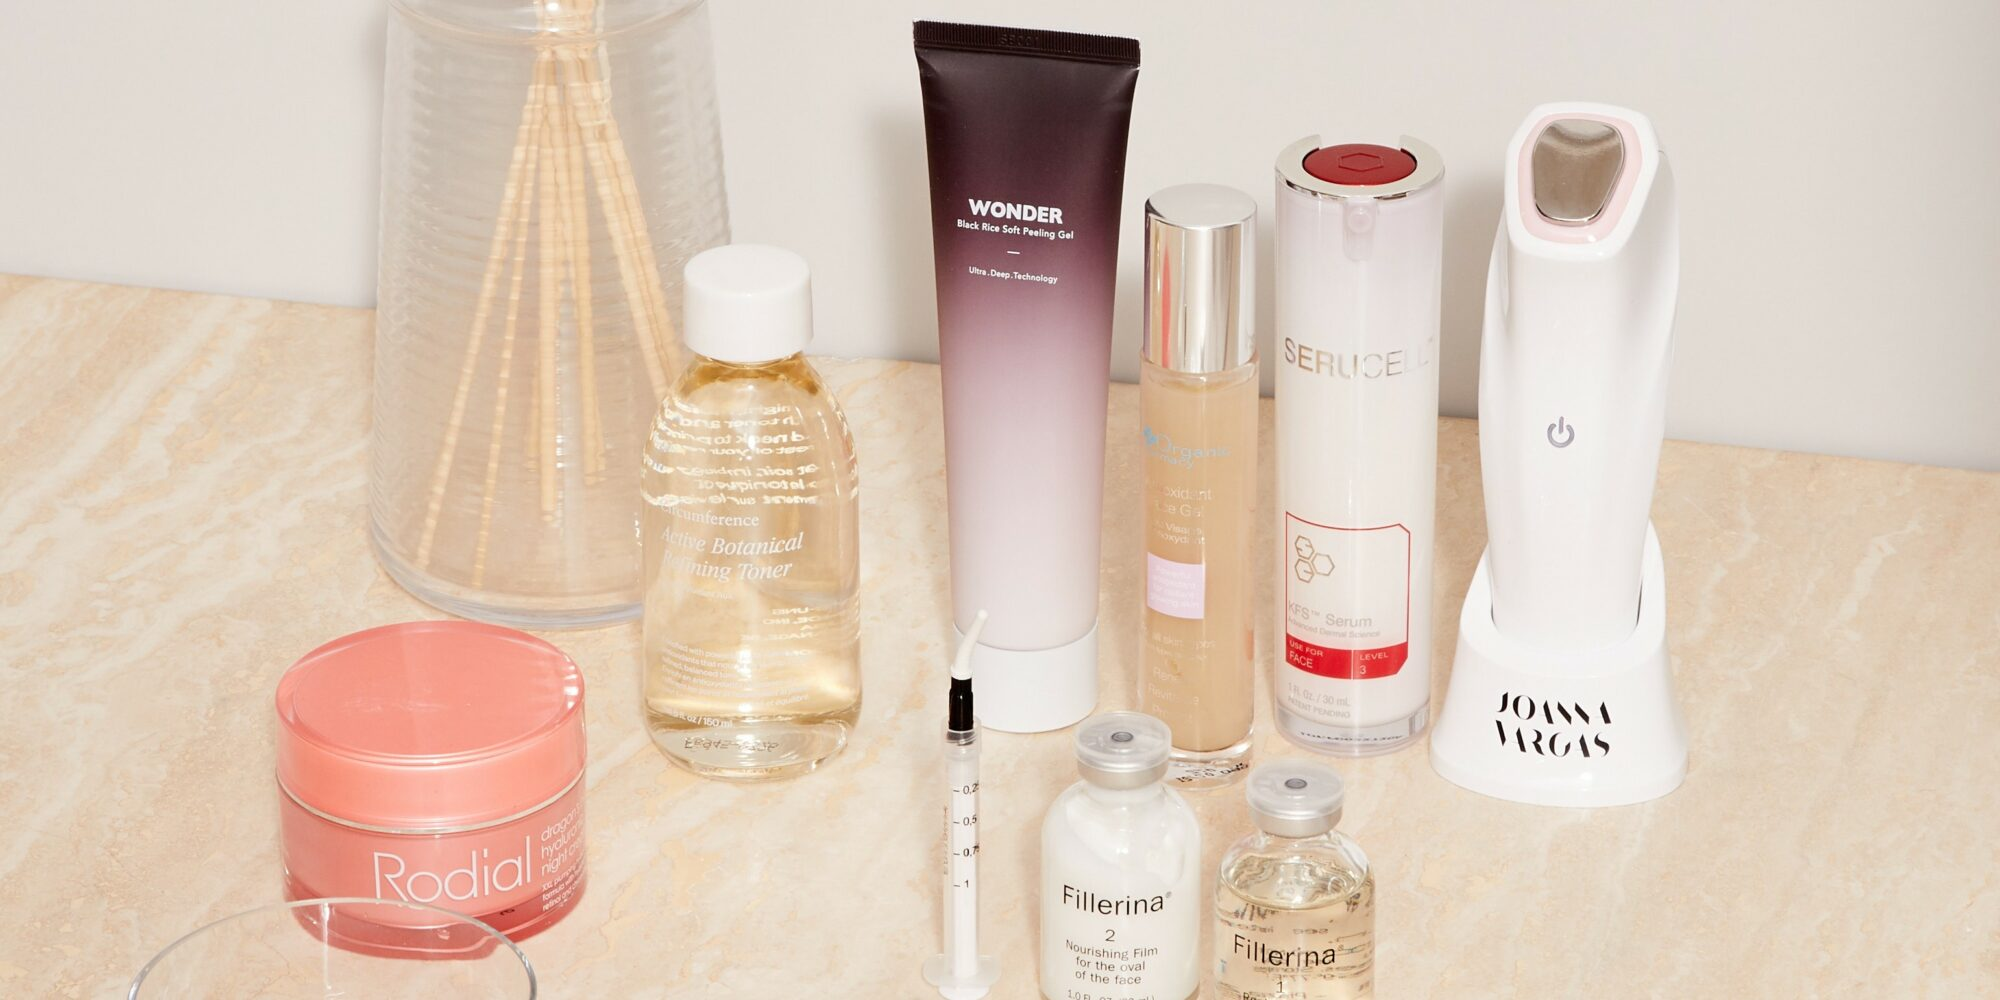 How Verishop Is Building Its Beauty Assortment For Millennial And Gen Z Shoppers Changed By The Pandemic